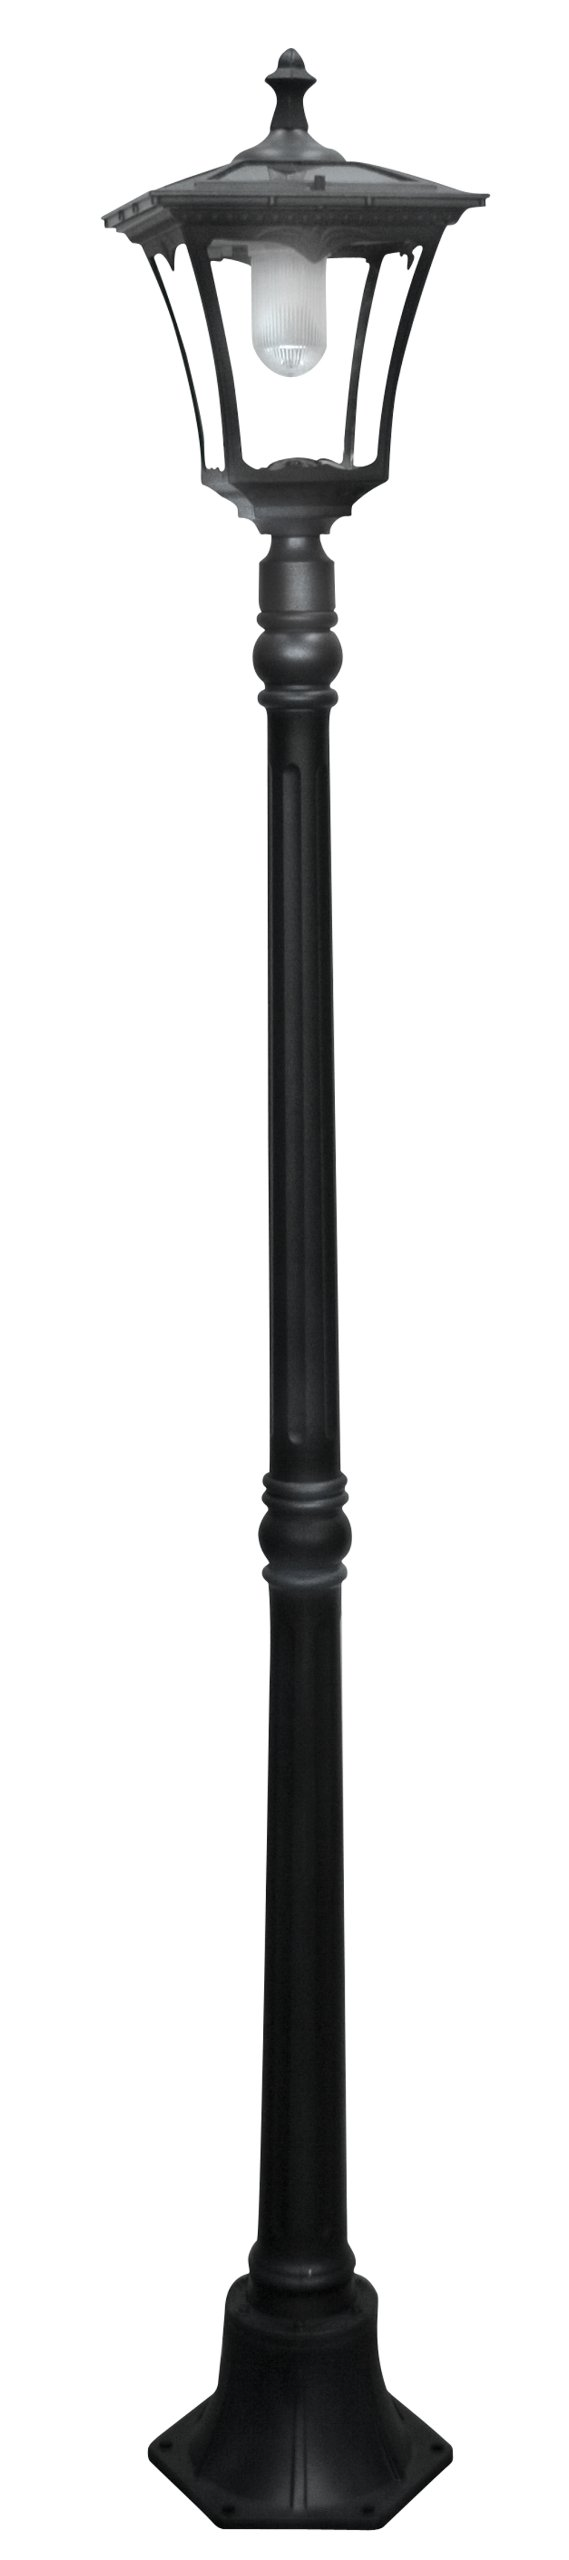 Paradise GL23716BK Cast-Aluminum Solar-Powered LED Streetlight-Style Outdoor Light by Paradise